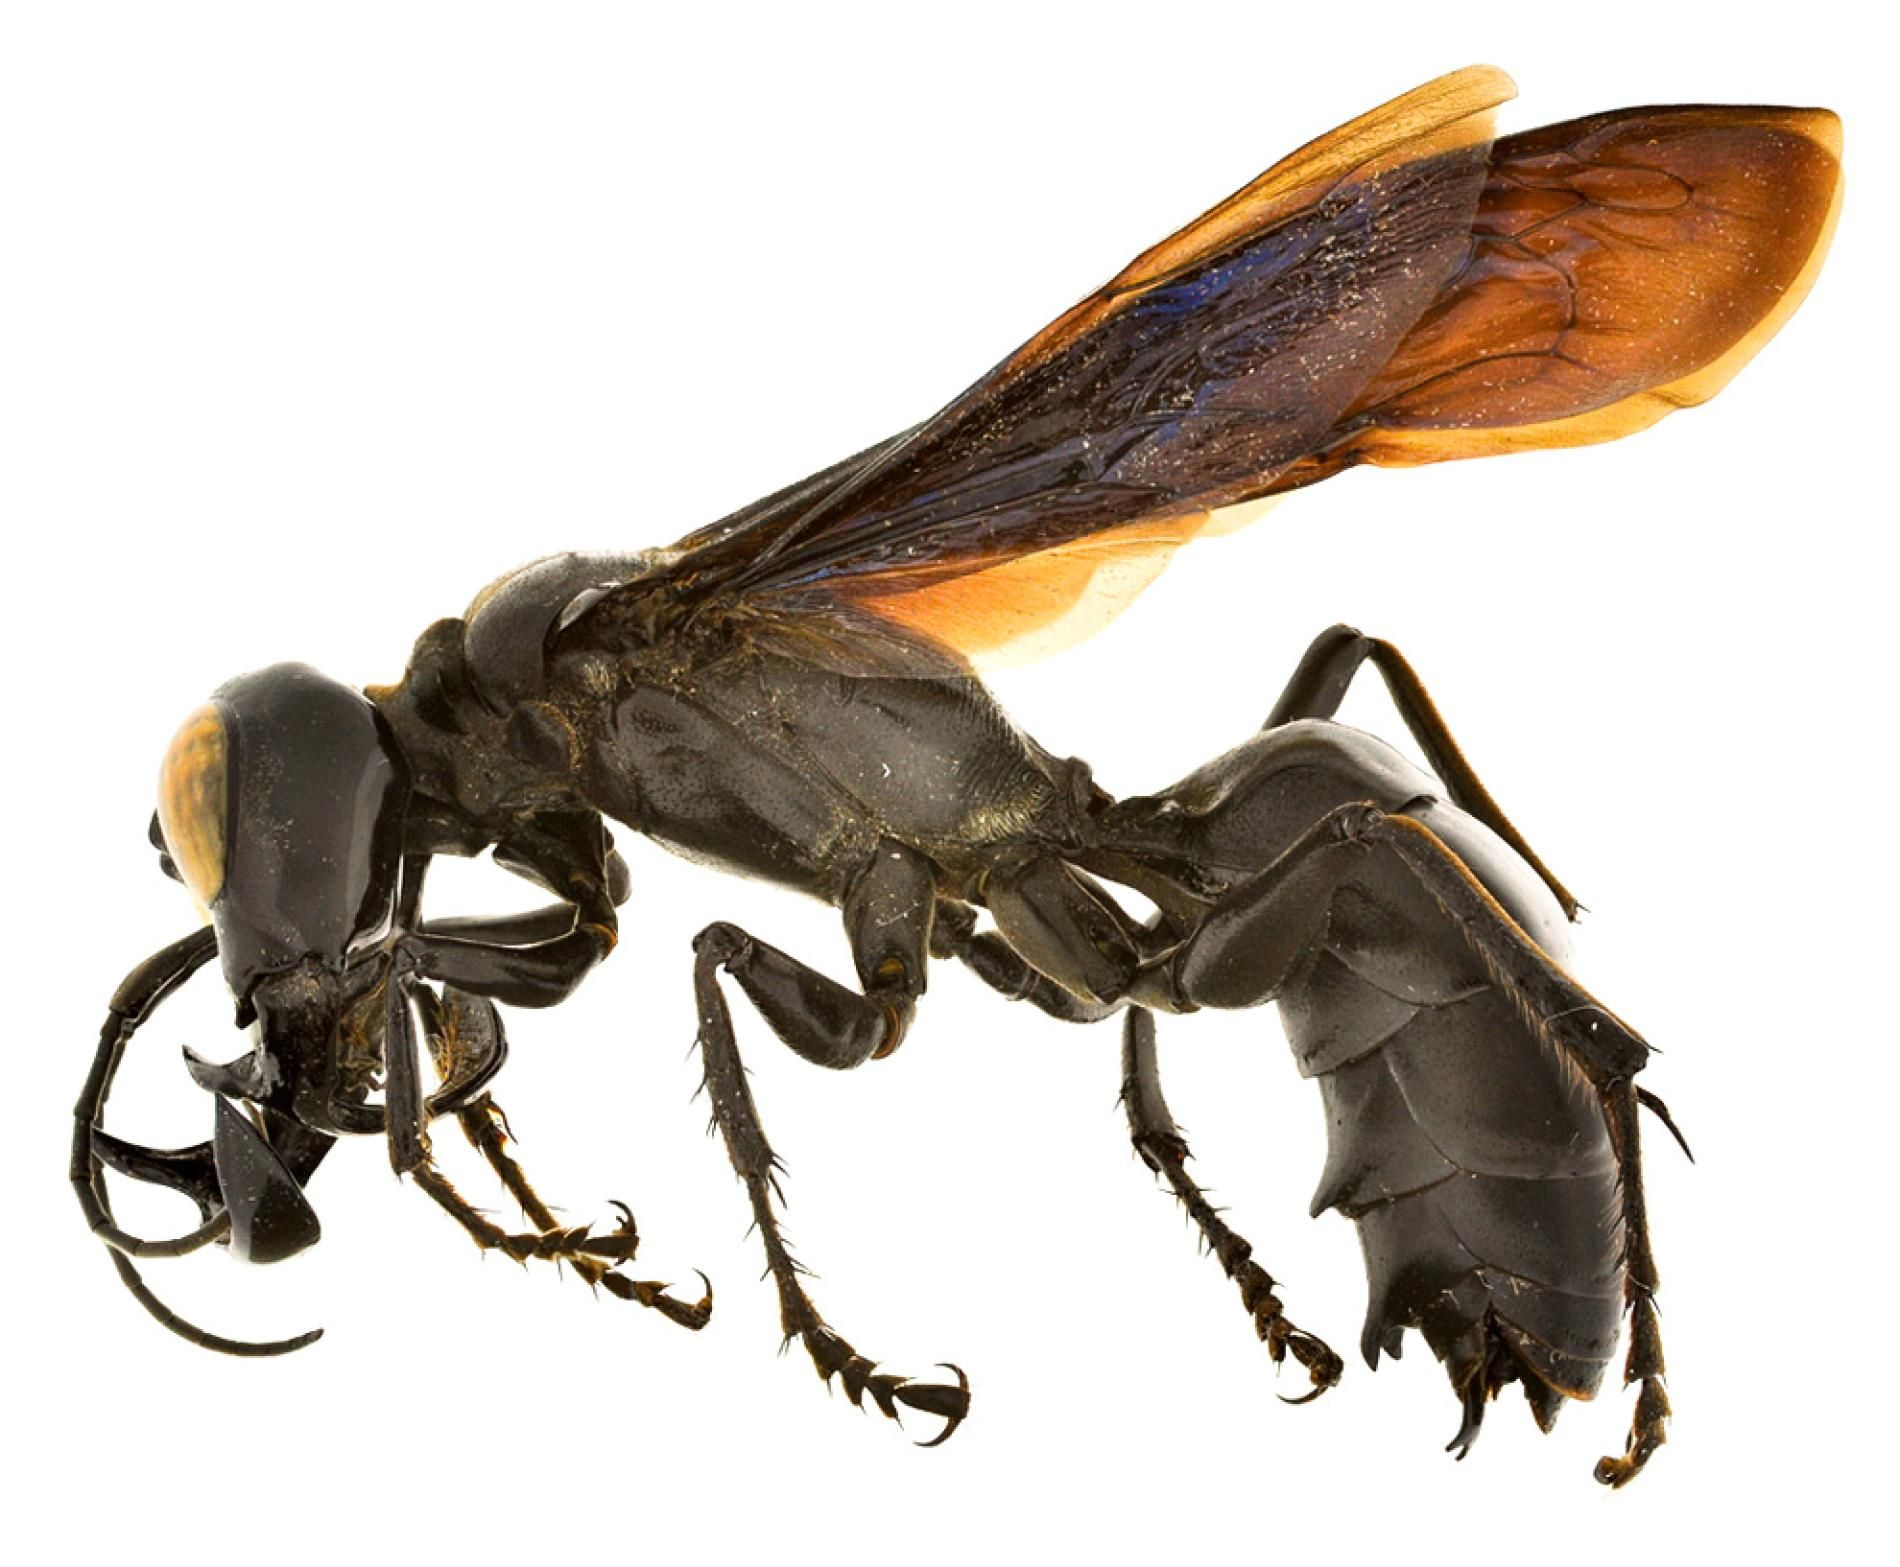 Related image Insects, Wasp, Bugs, insects